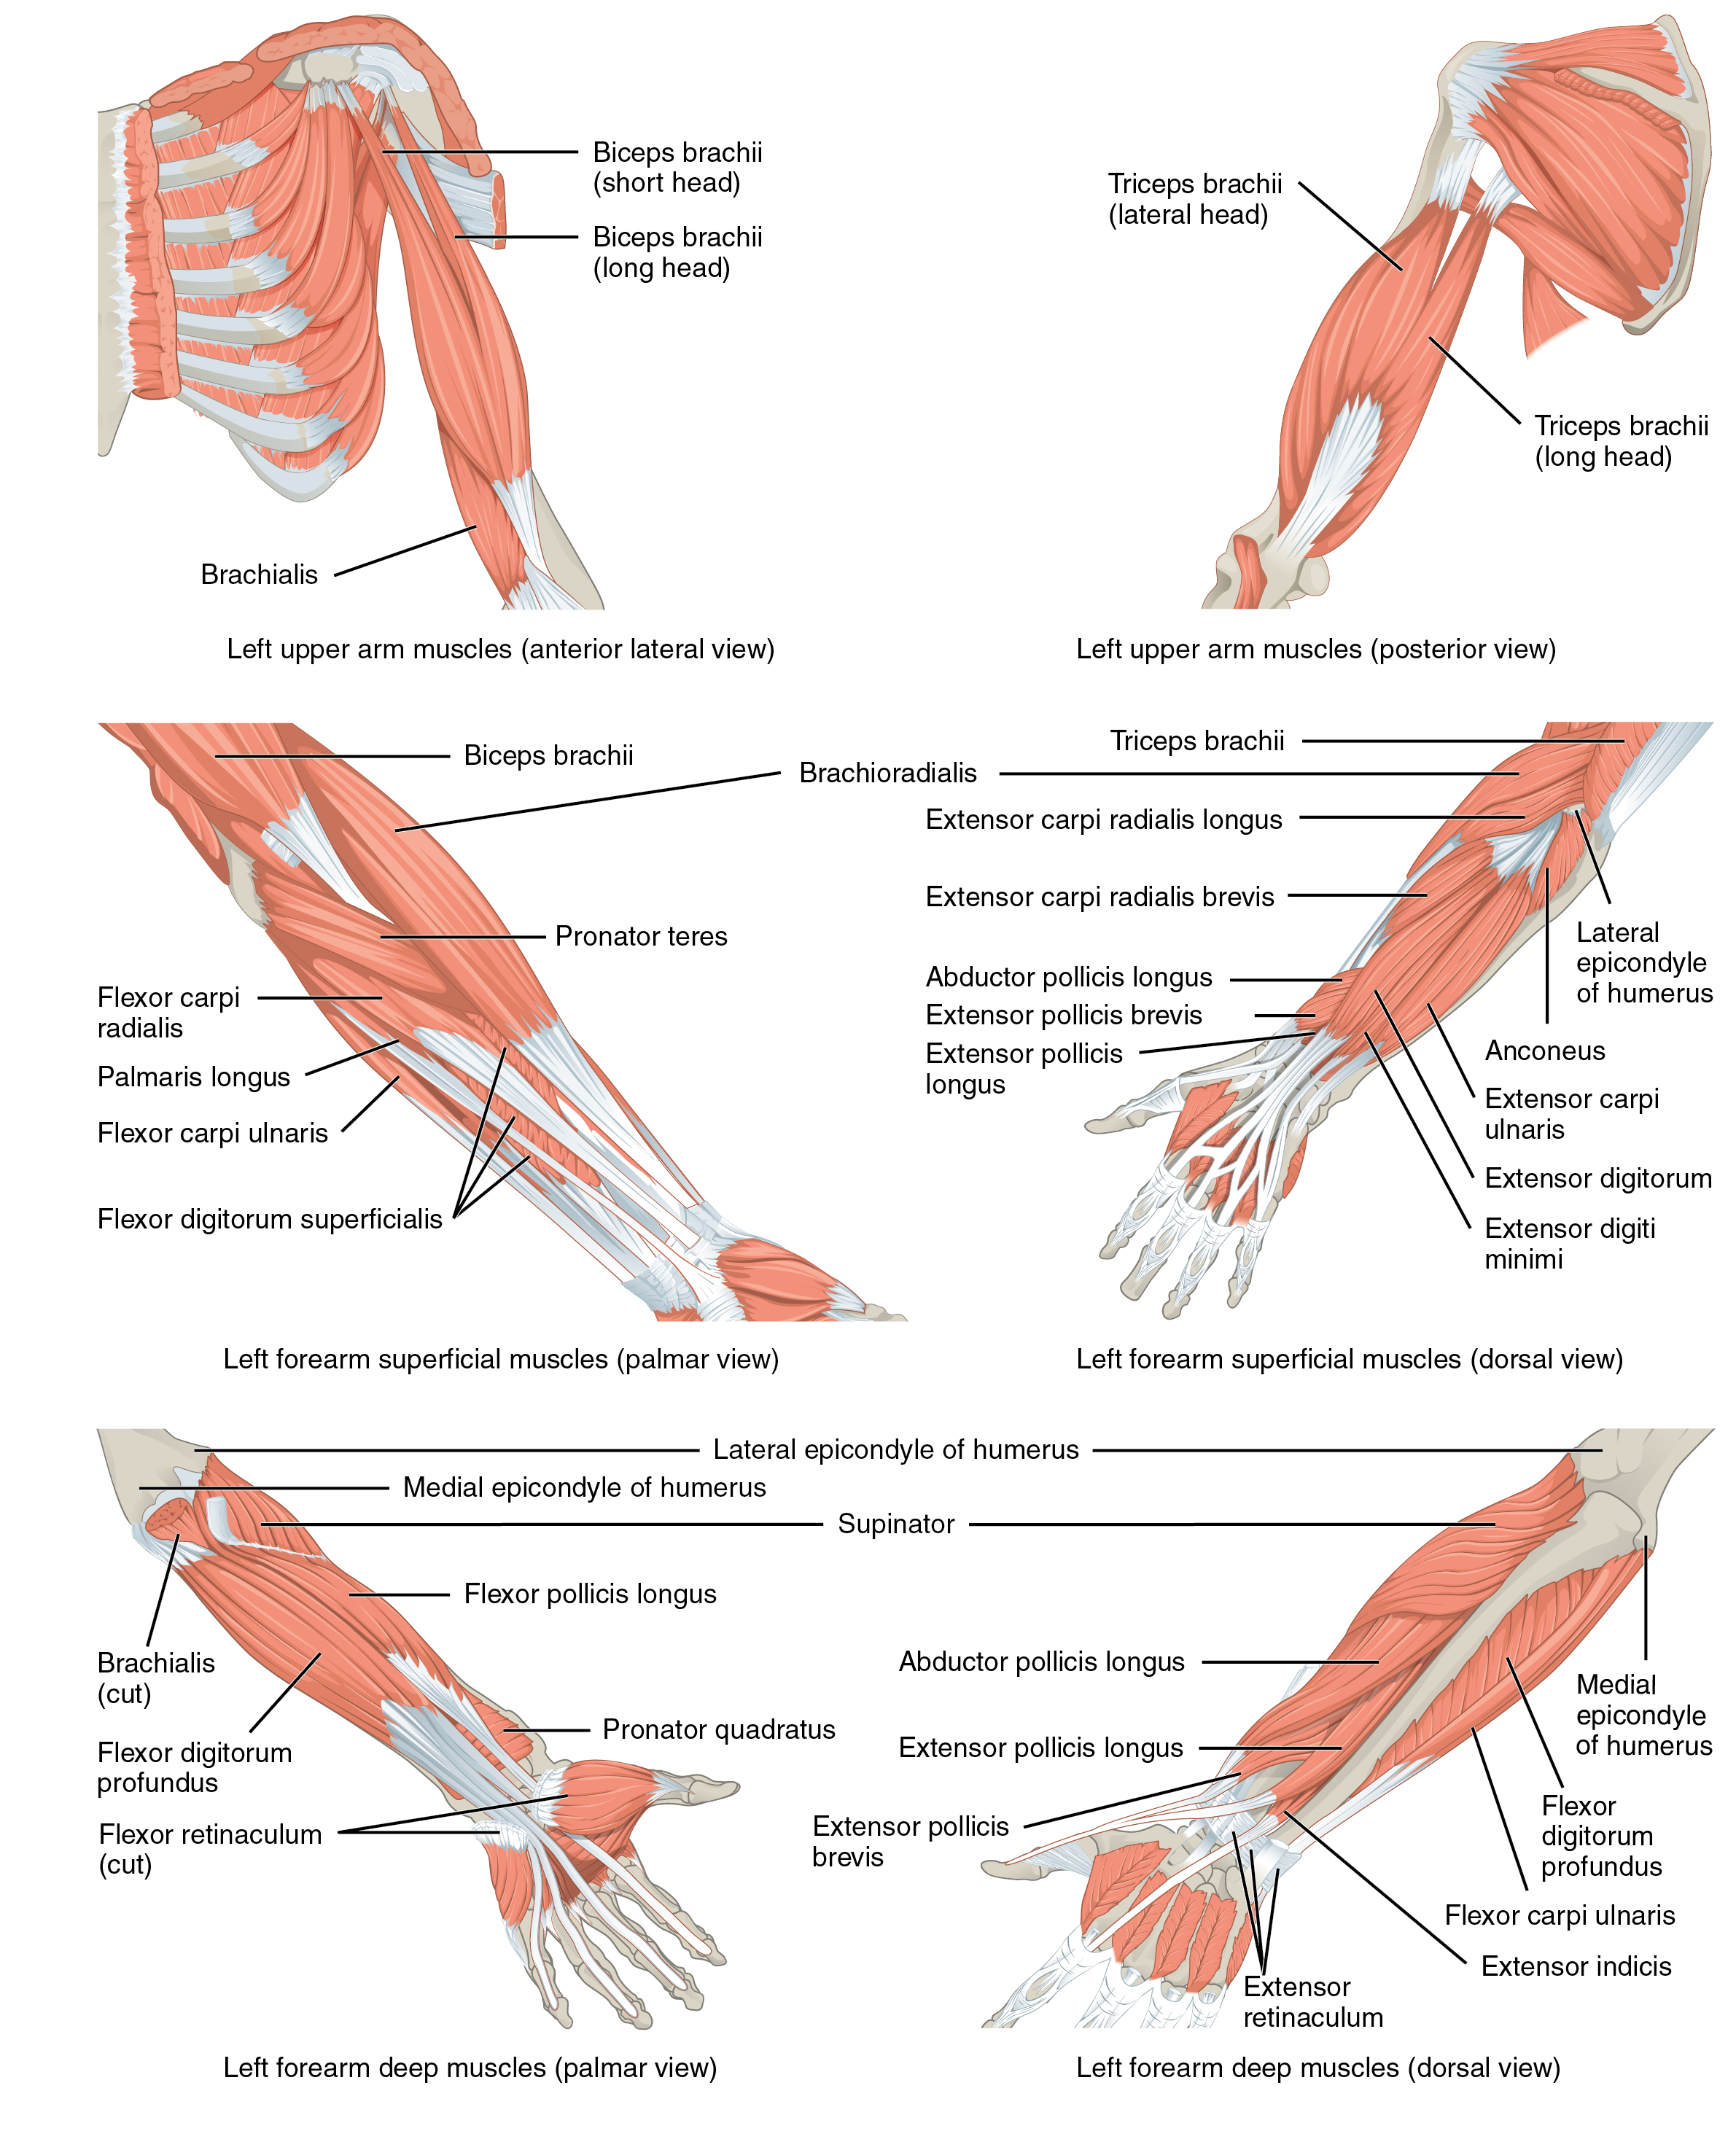 File:1120 Muscles that Move the Forearm.jpg - Wikimedia Commons